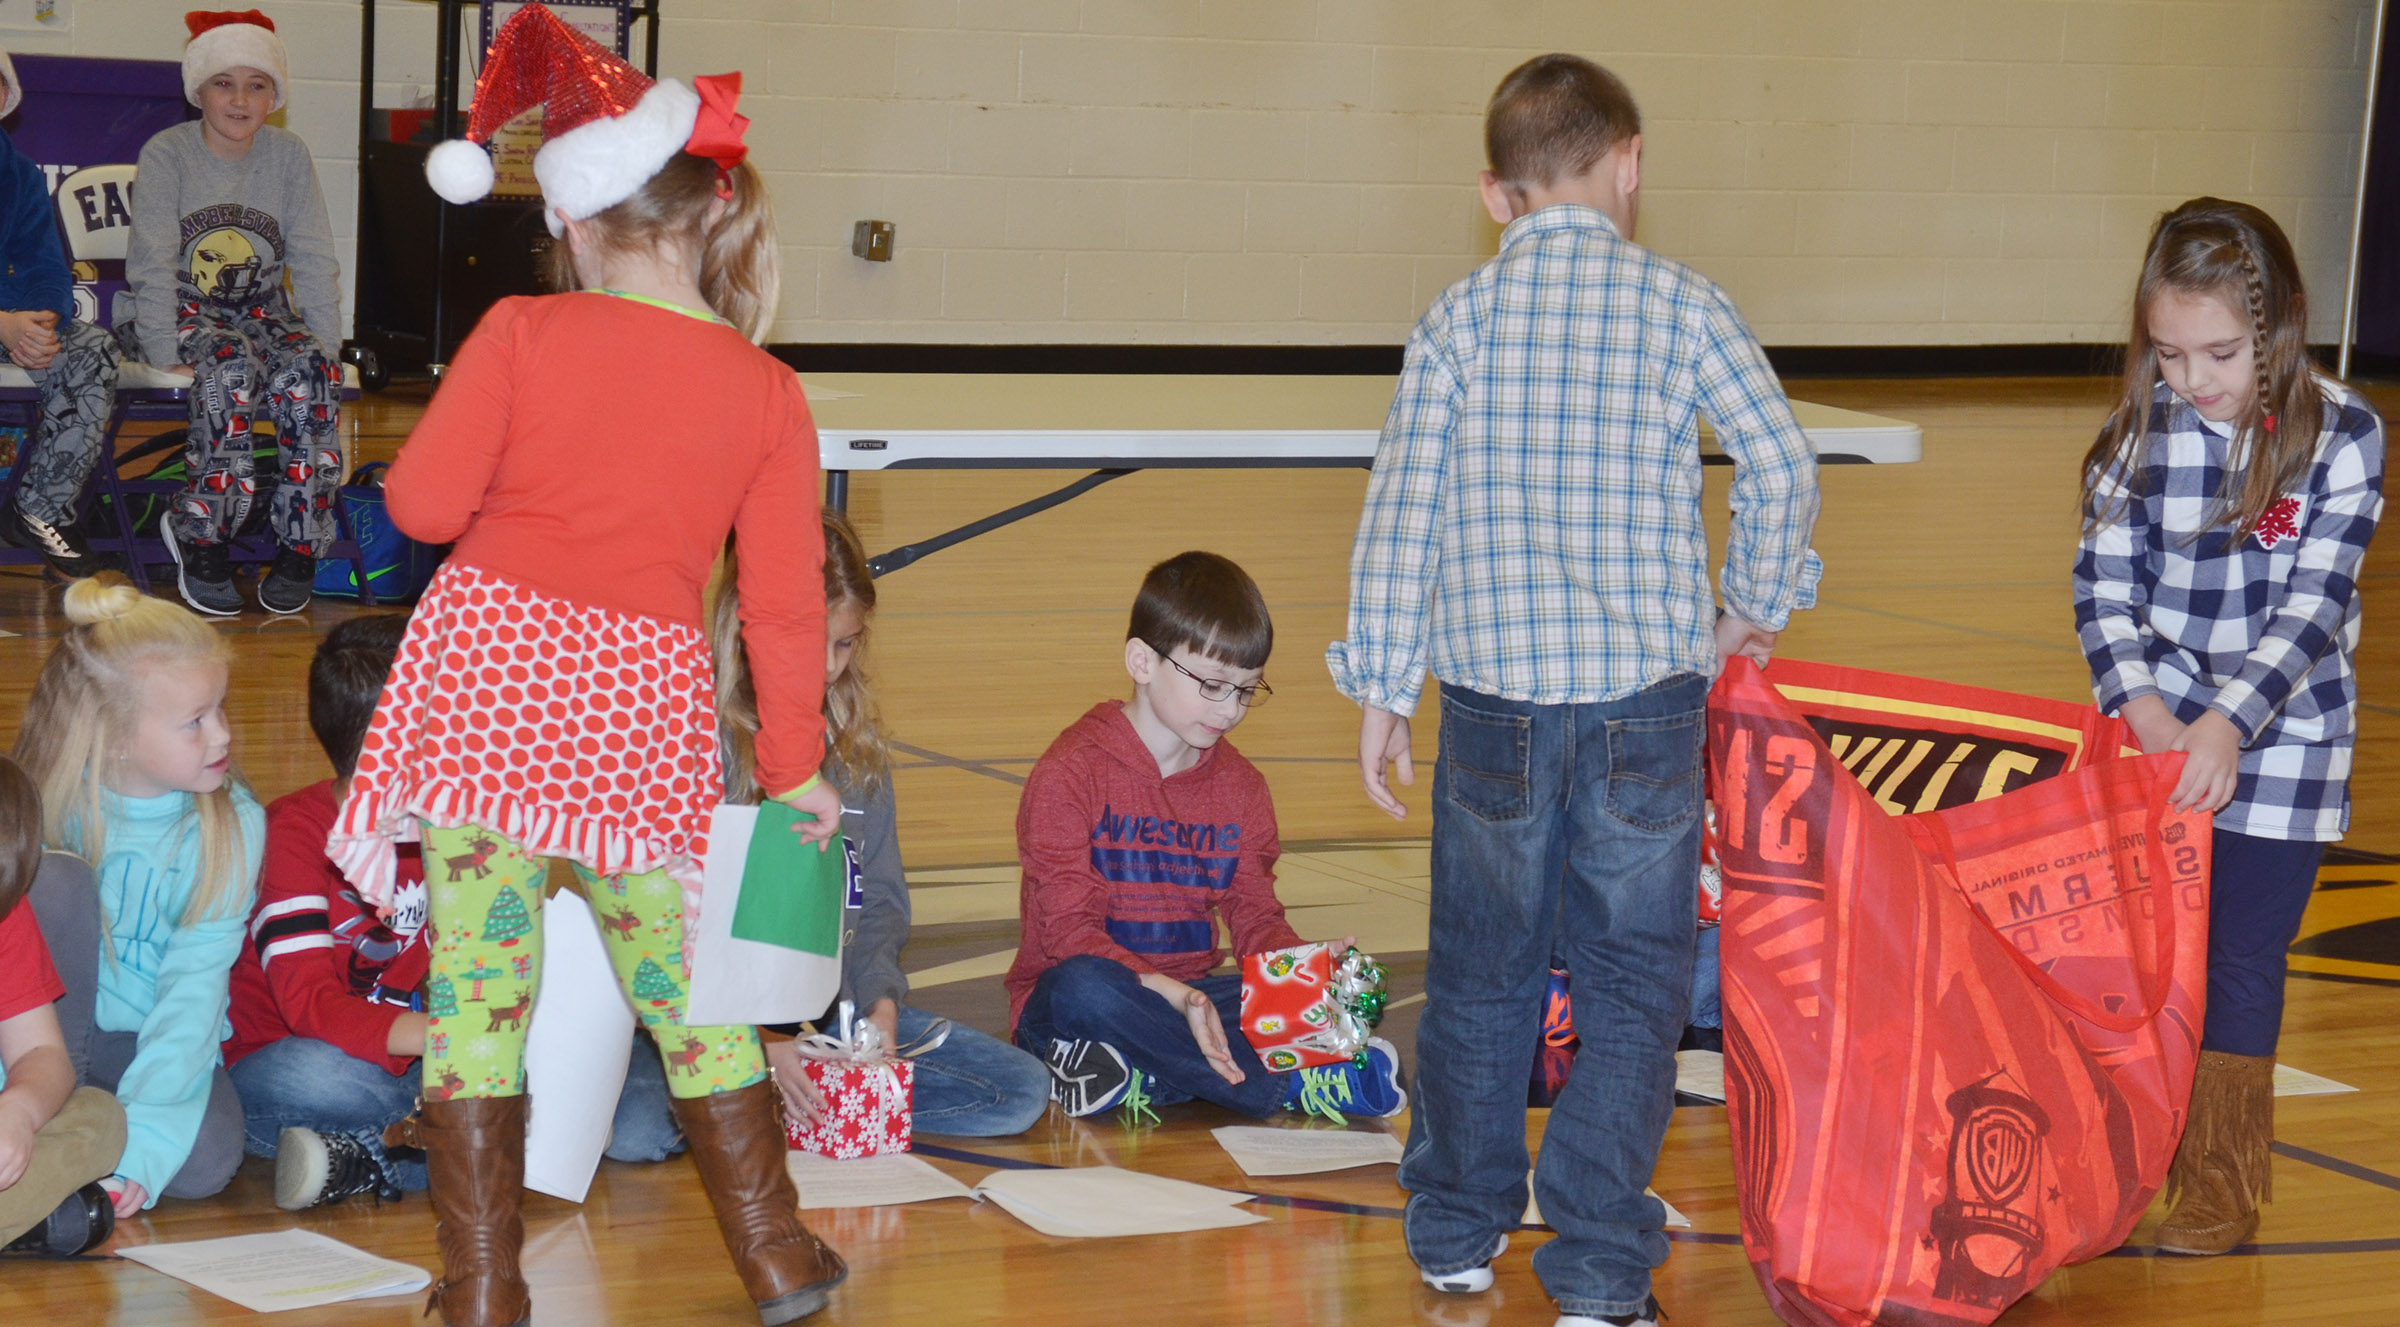 CES first-graders Aubreigh Knifley, at left, and Braxton Rhodes pass out gifts as they portray Santa and the school principal.